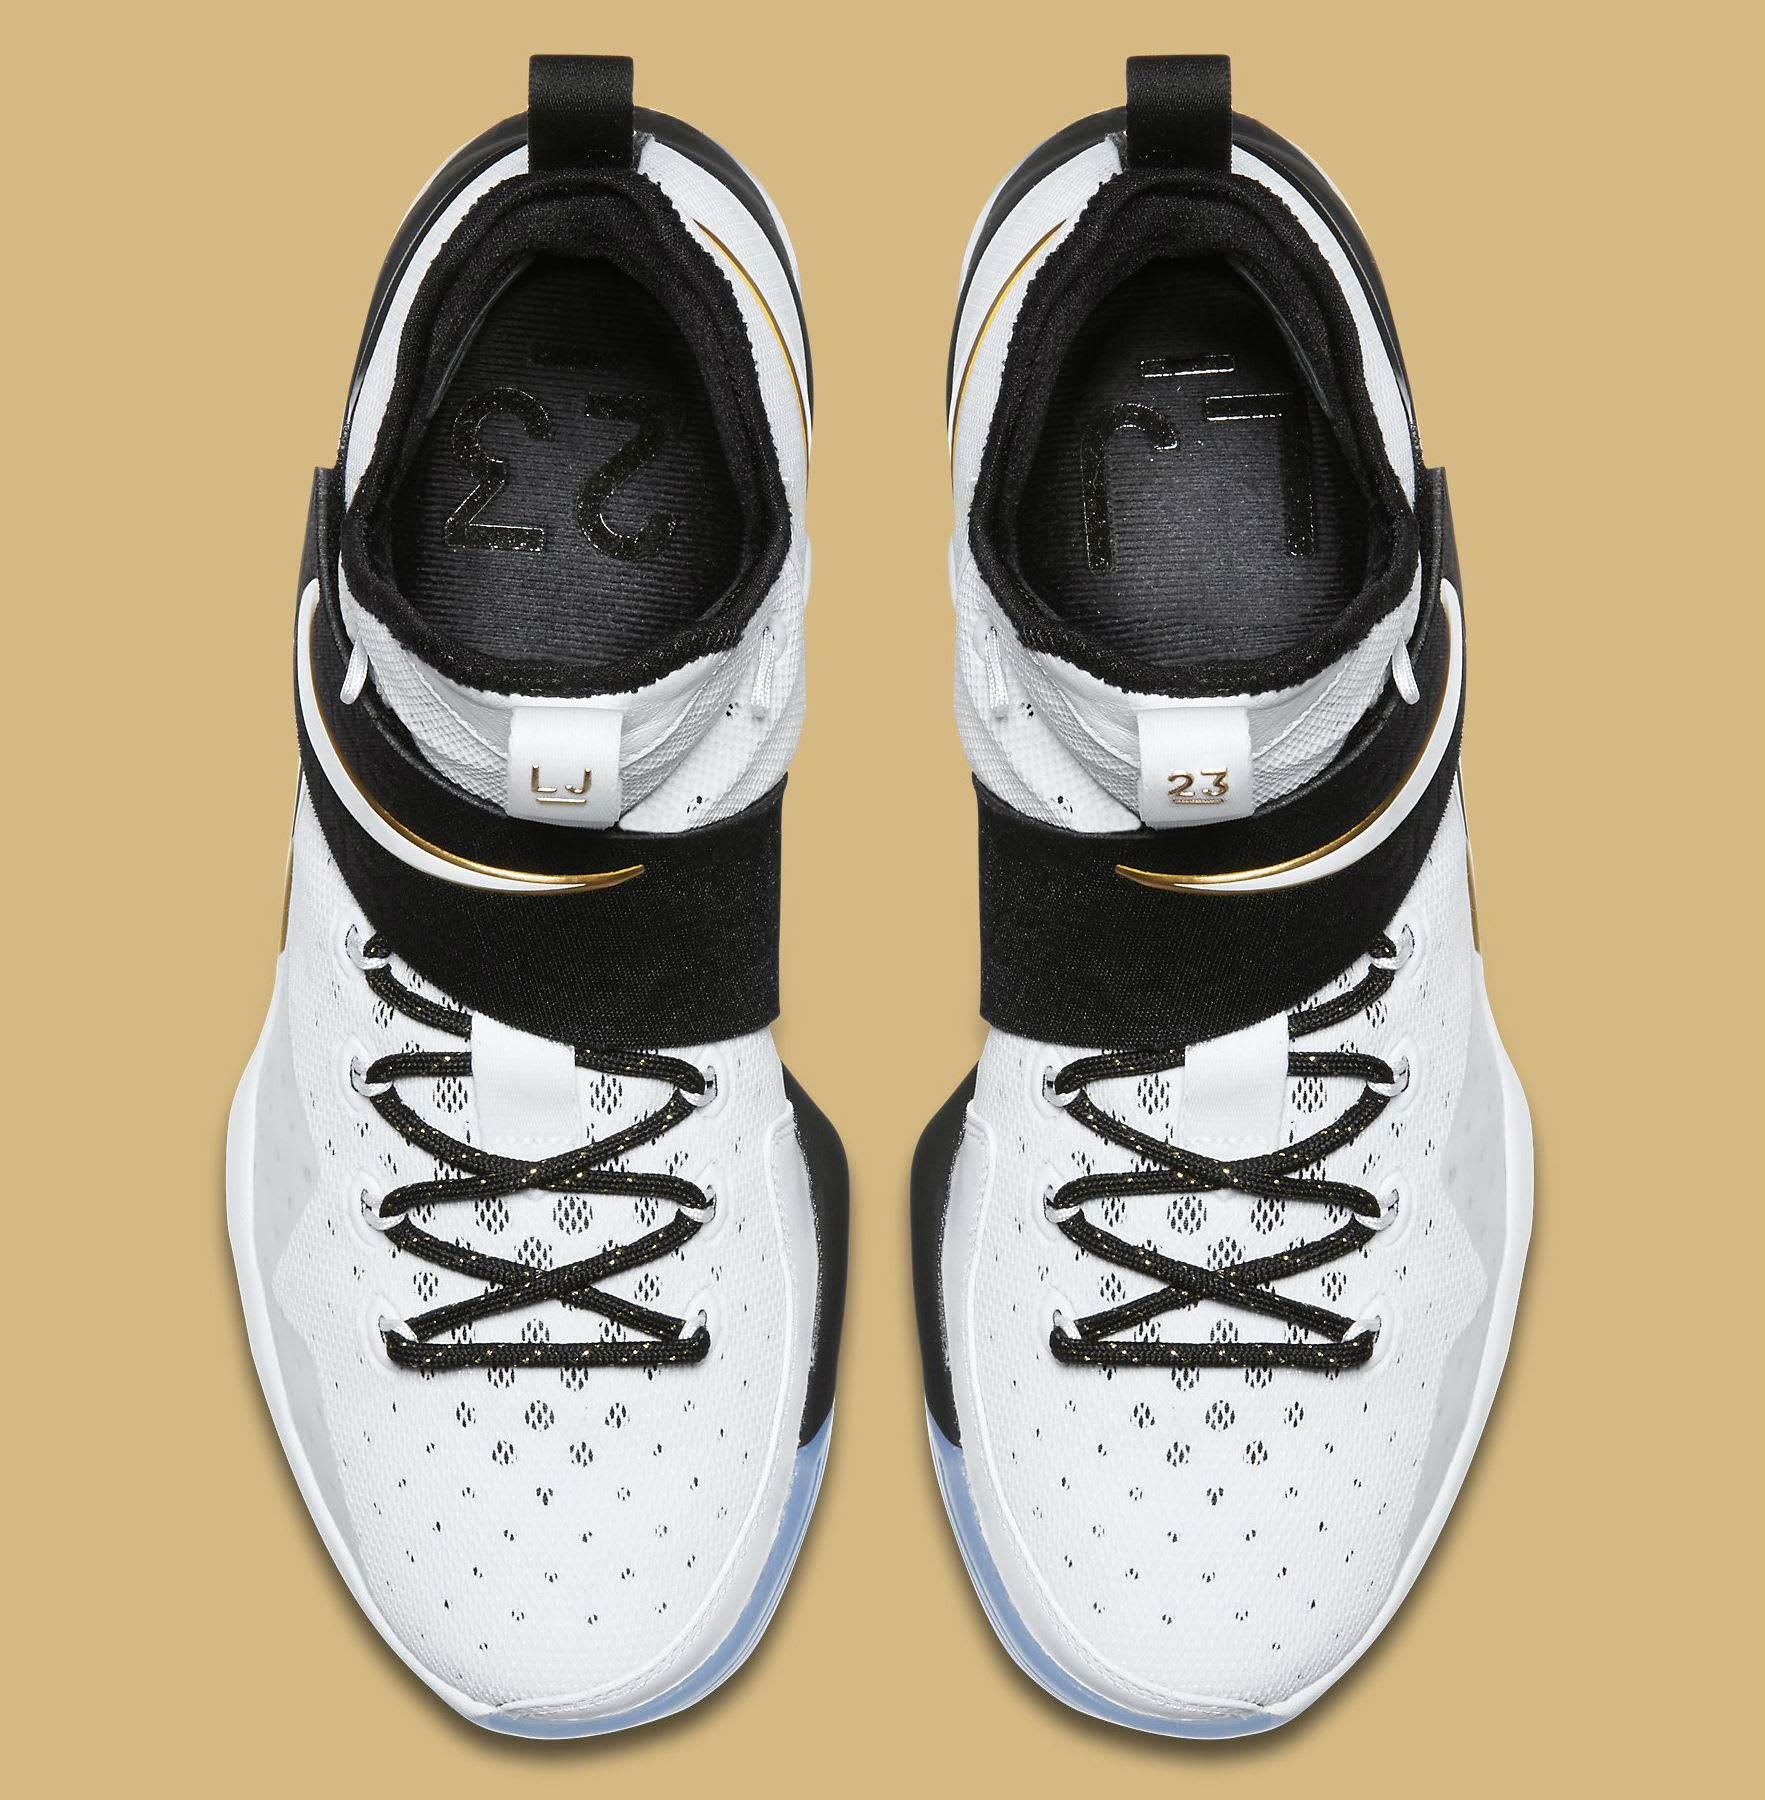 the latest d3c99 d4012 ... where to buy nike lebron 14 bhm release date top 860634 100 a10c7 28fcb